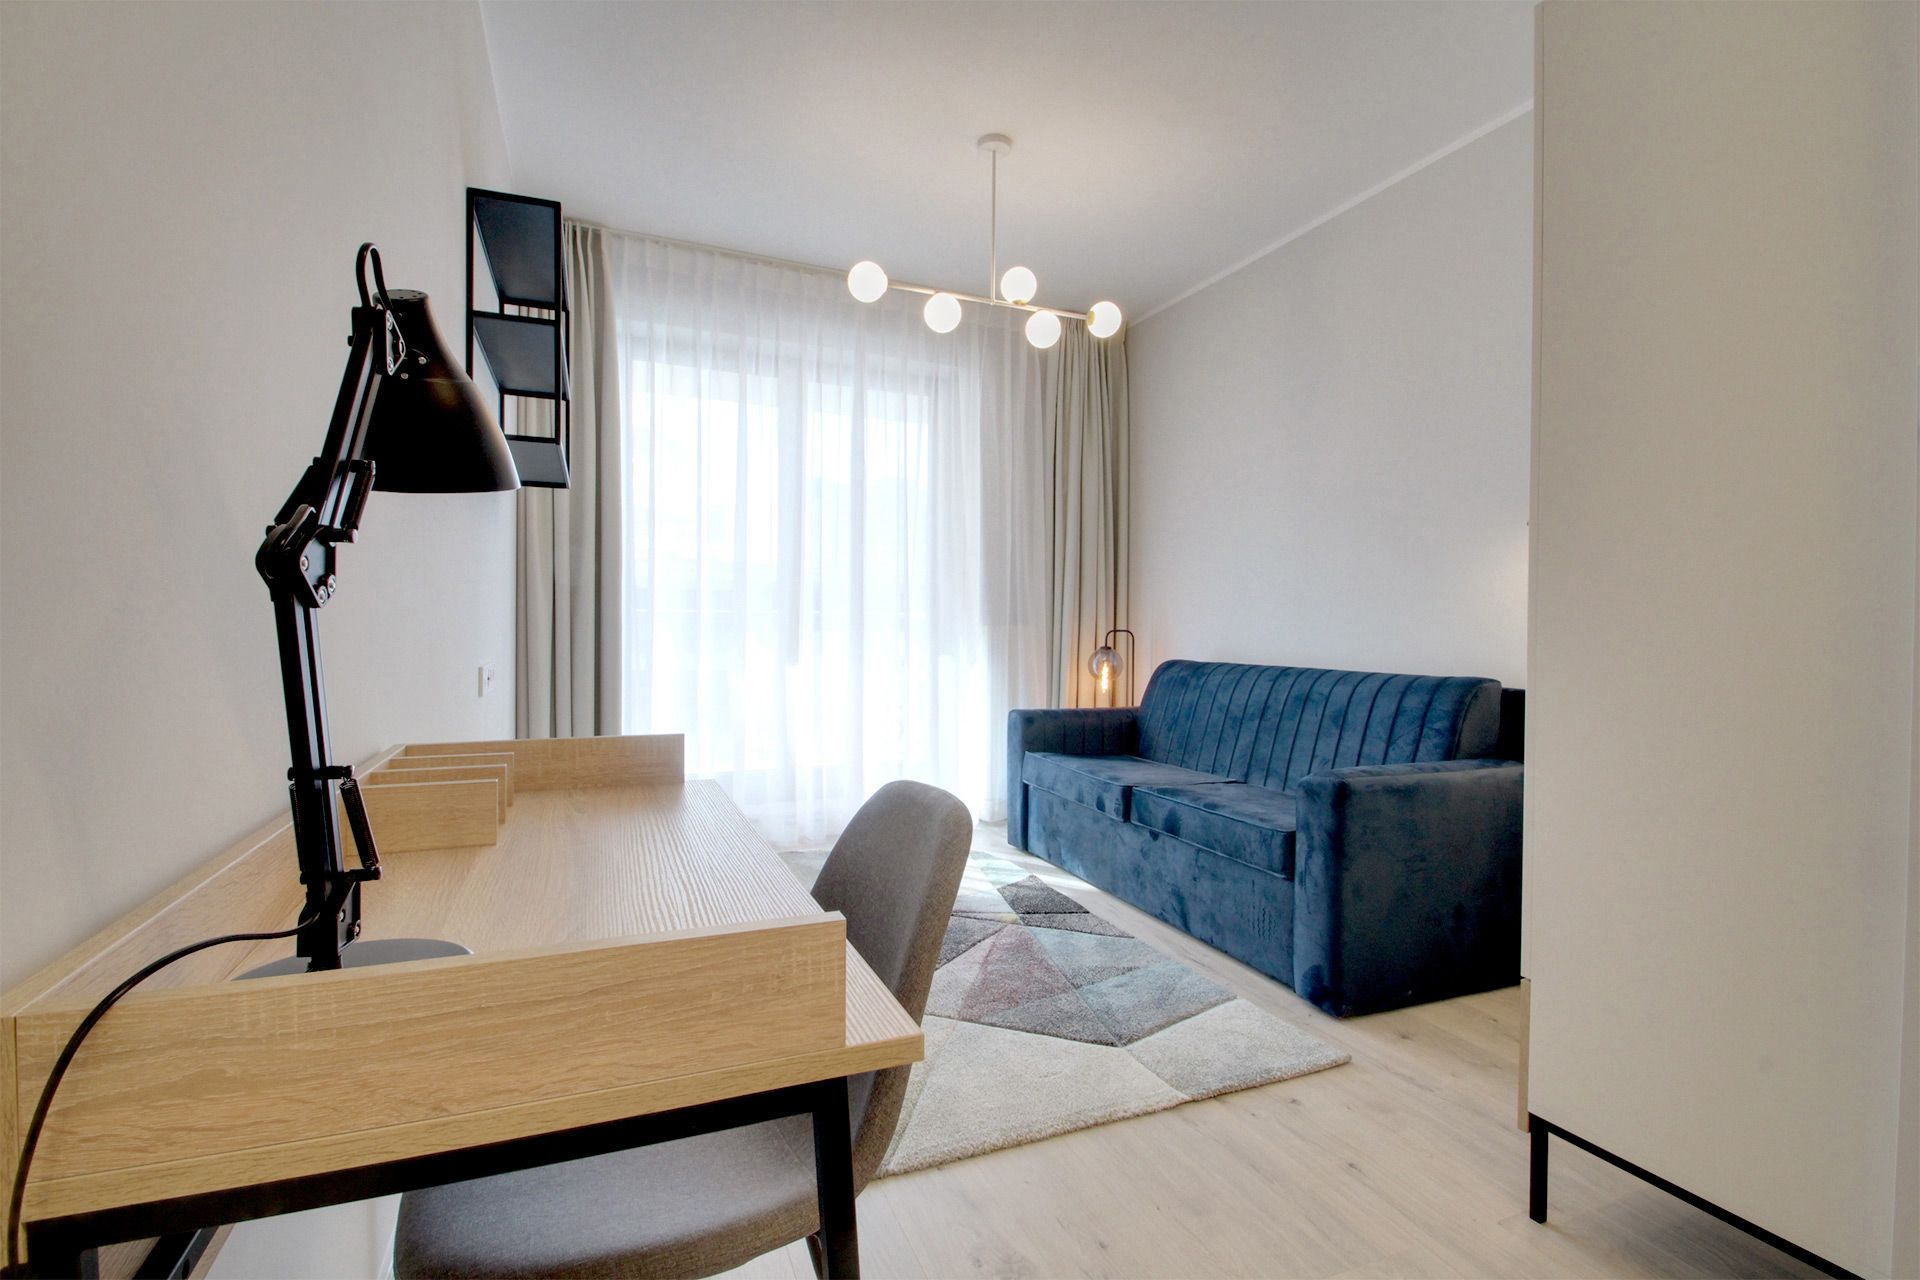 Studio - Small apartment to rent in Warsaw UPR-A-016-3